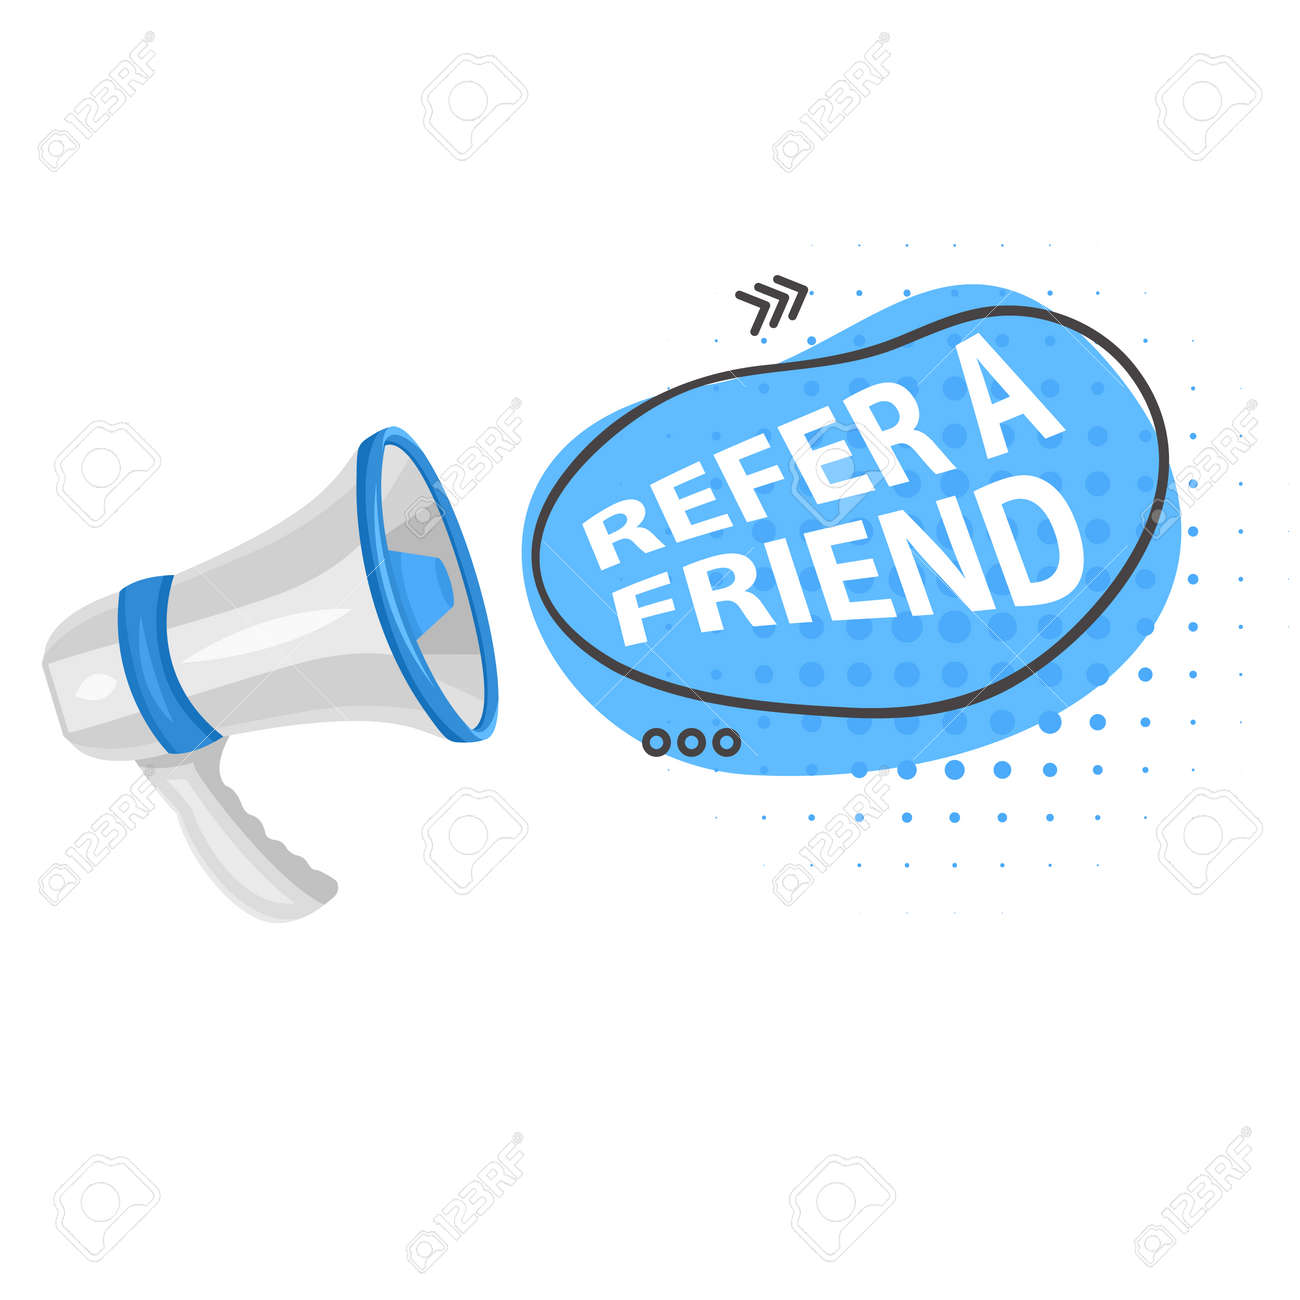 Share media information refer friend loudspeaker isolated icon program or app network and media posts and information share suggestion or reference advice or referral emblem marketing - 173309081